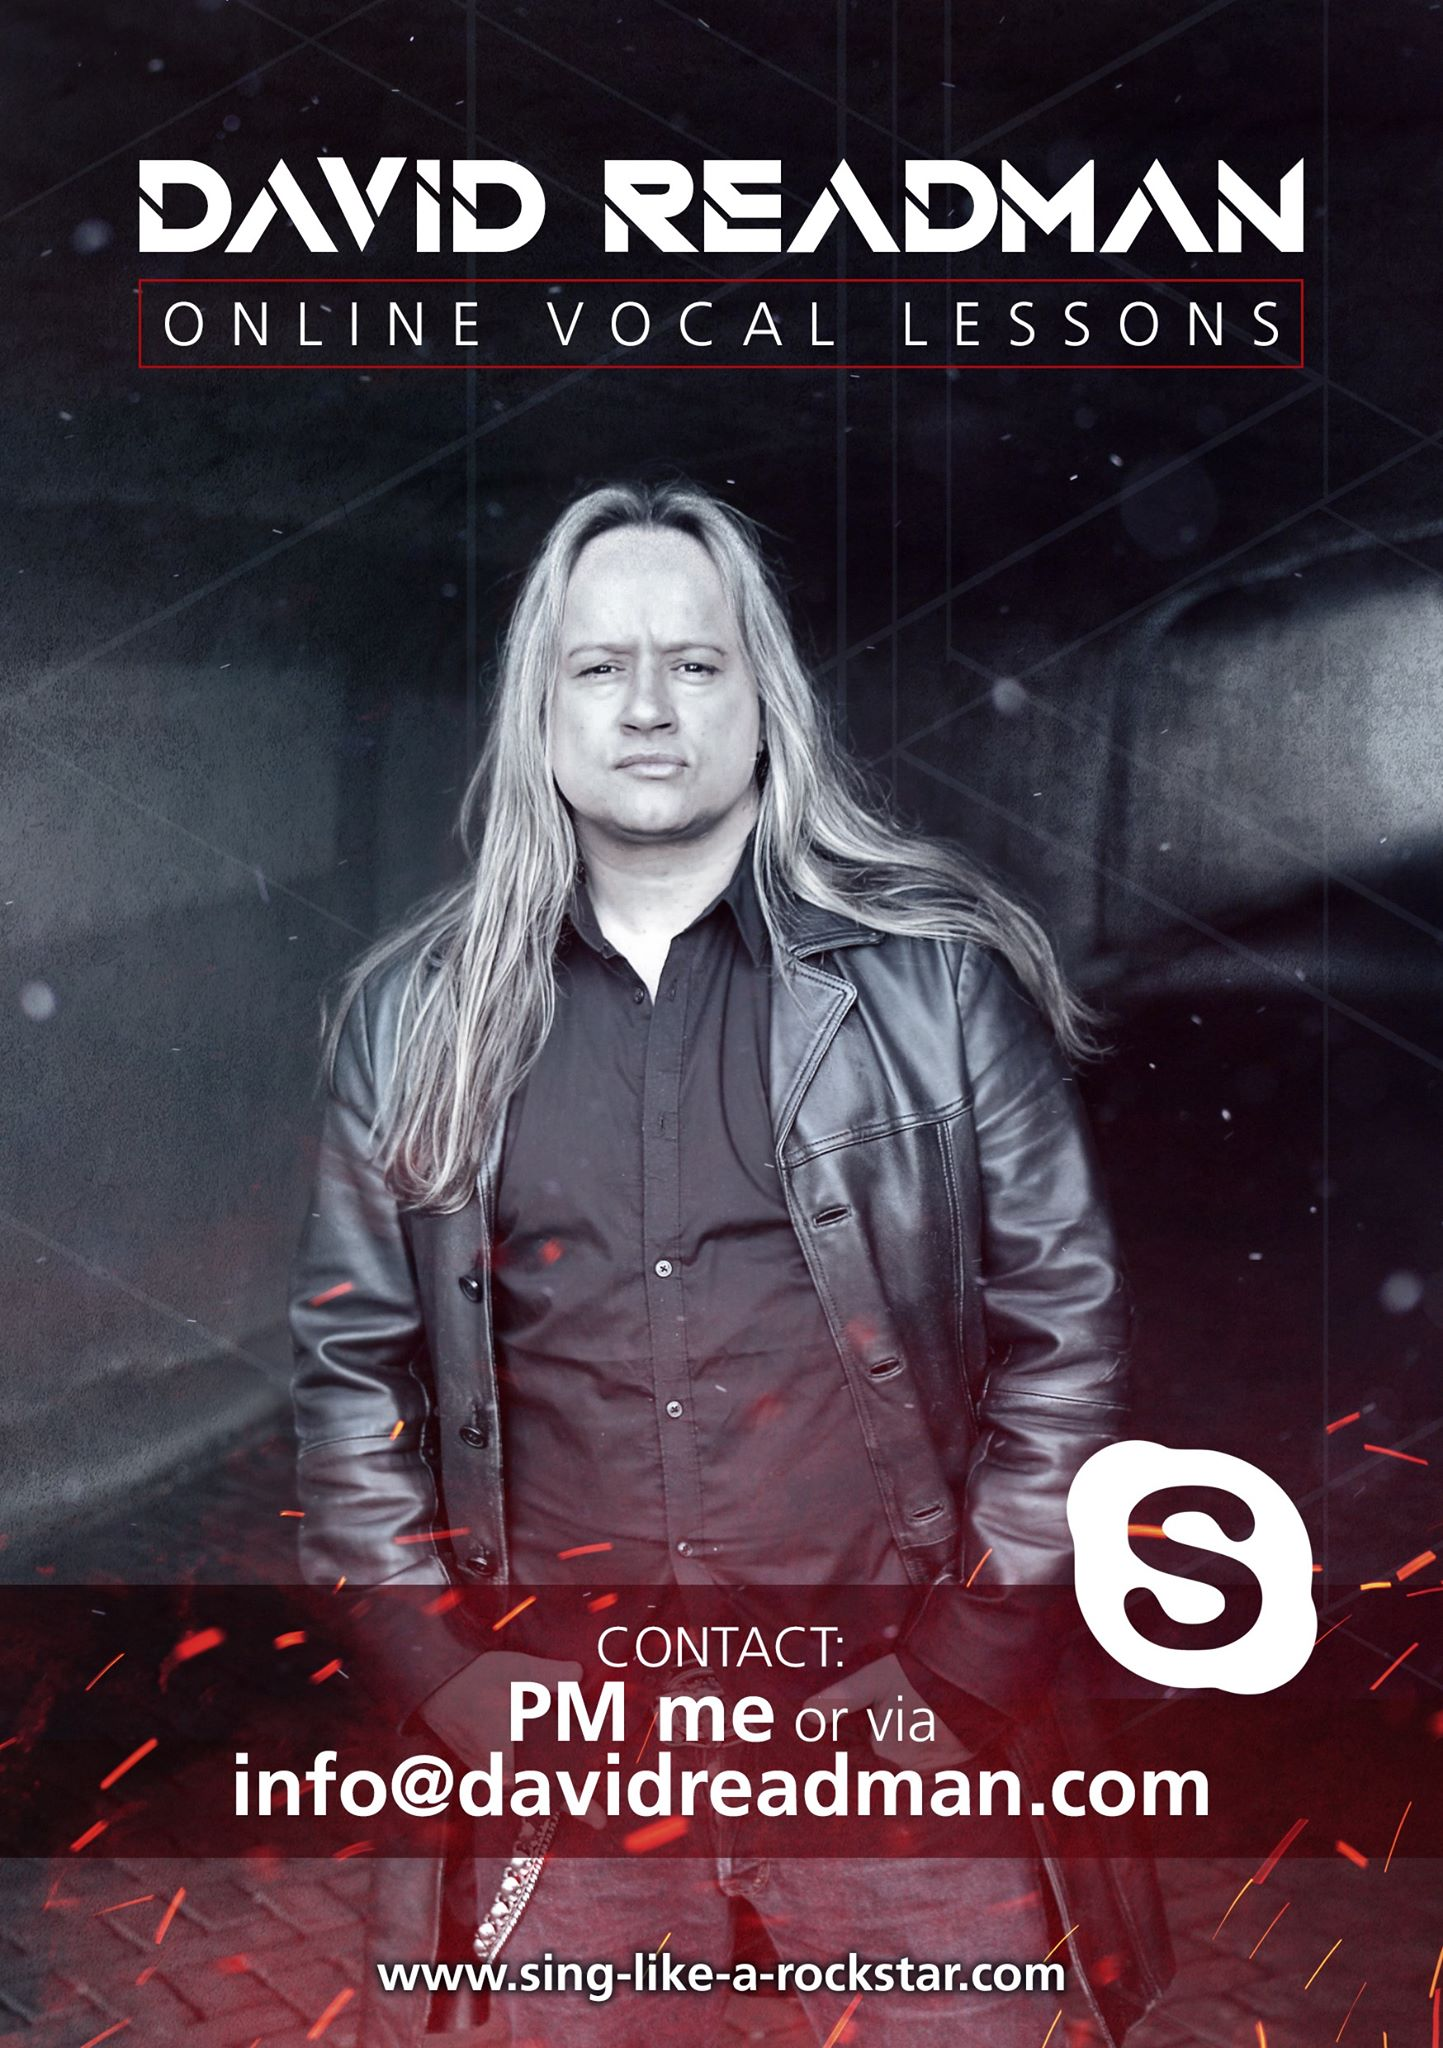 ONLINE VOCAL LESSONS!